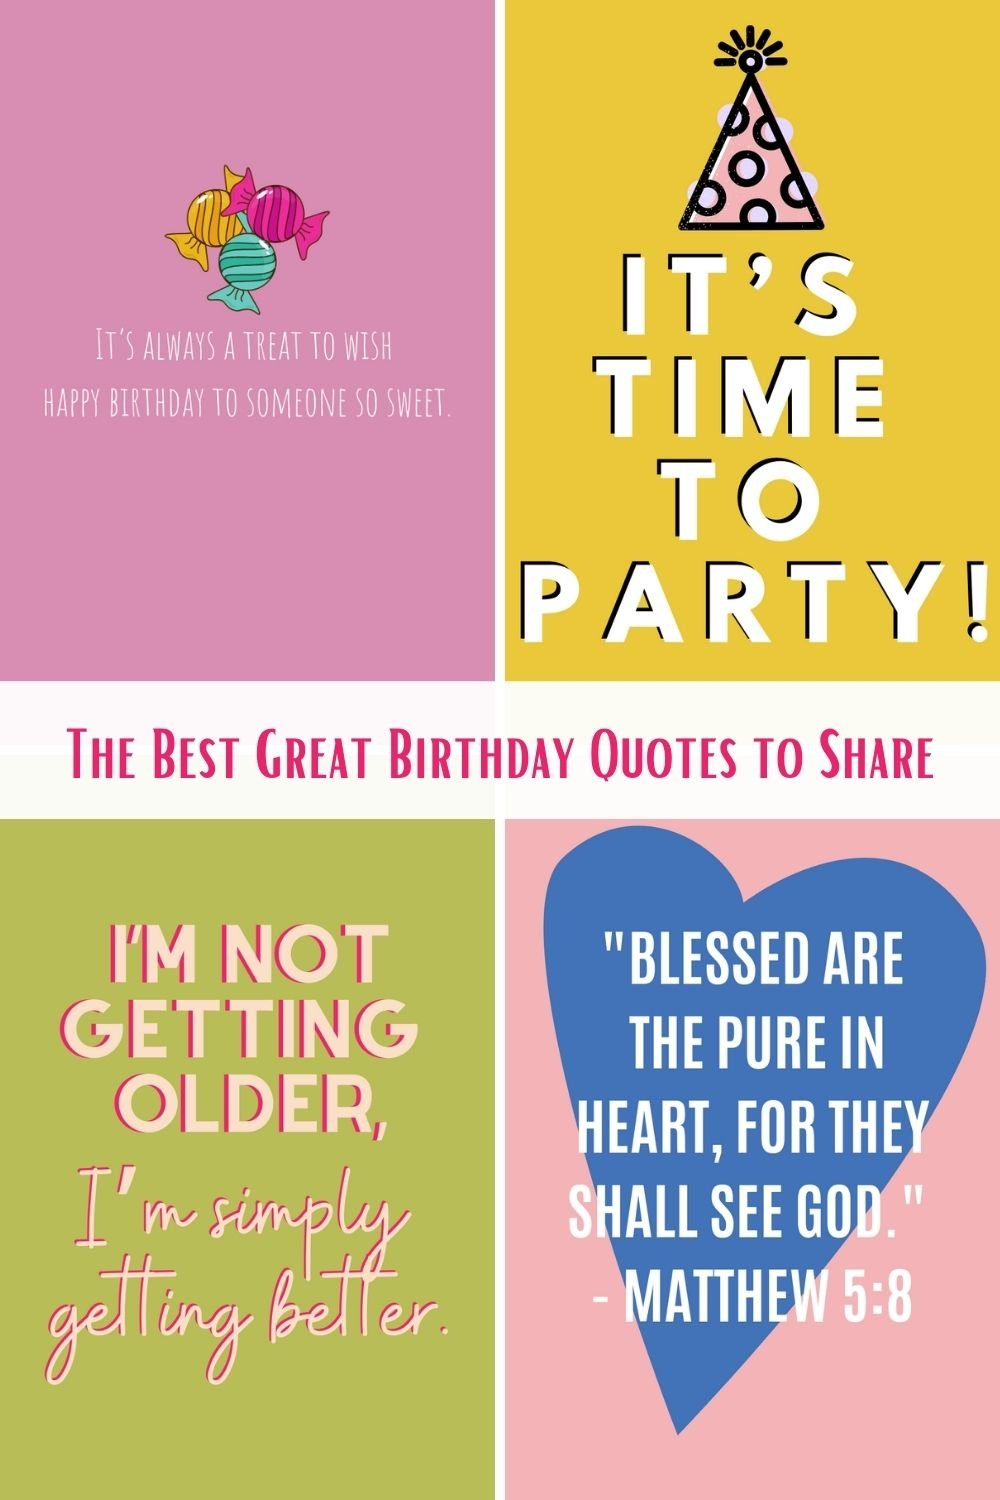 Best Birthday Quotes to share on Social media